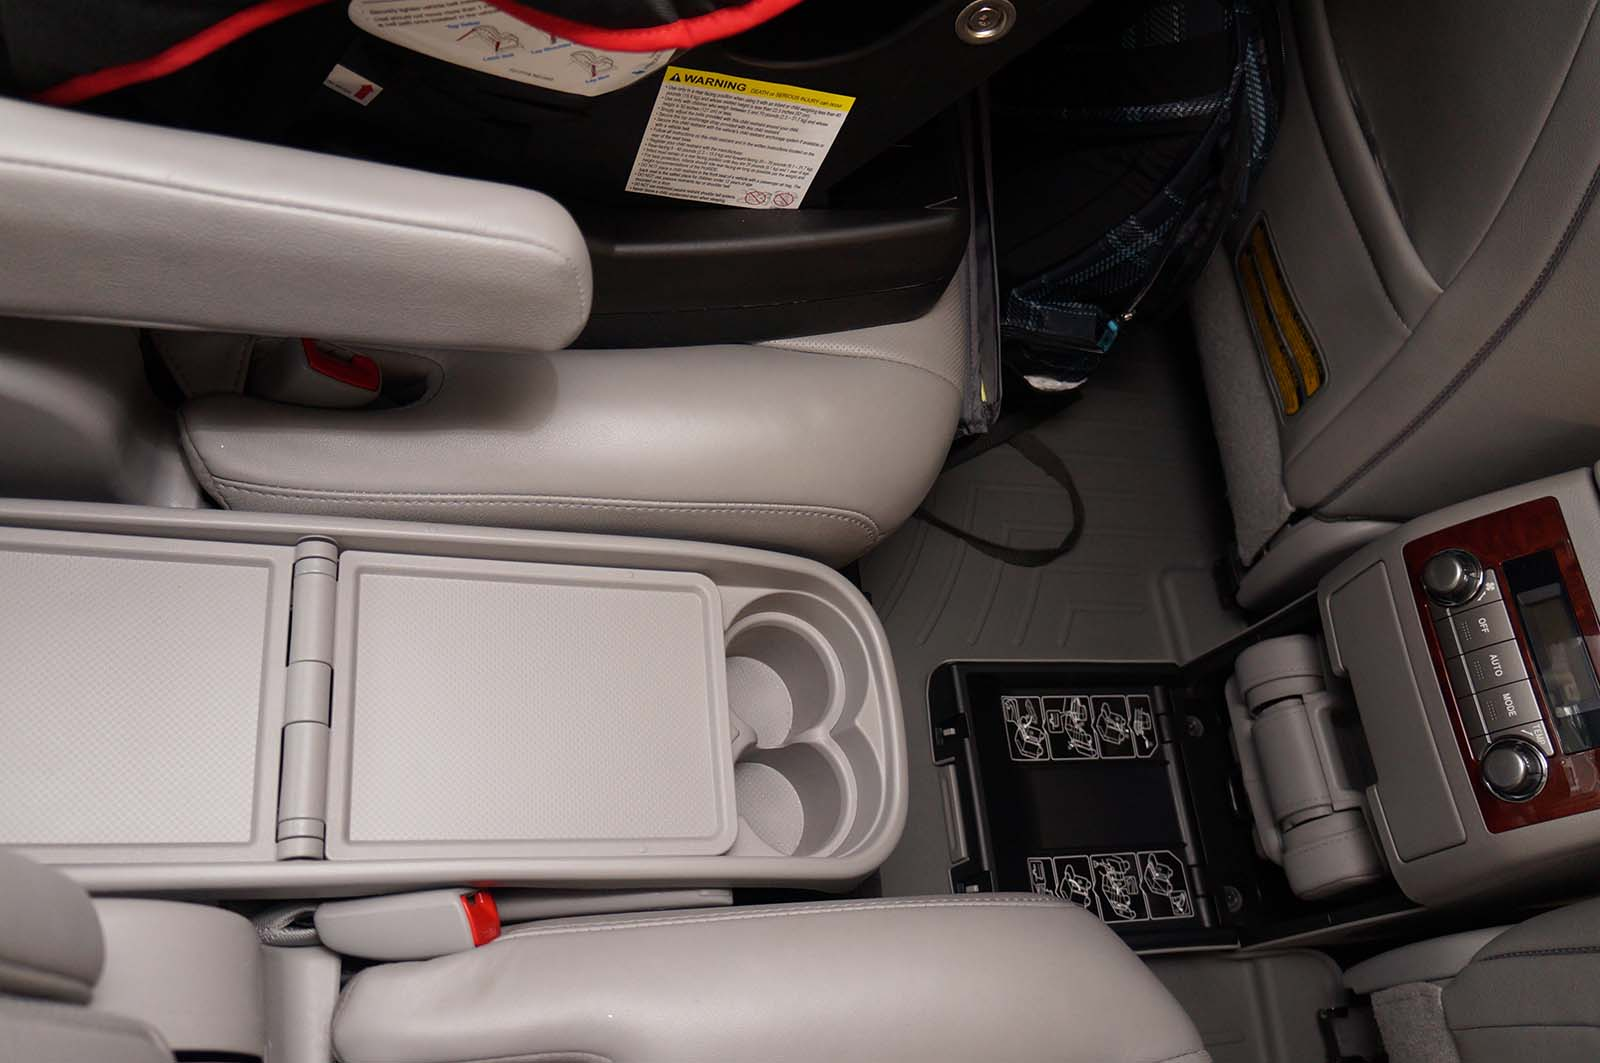 2012 Toyota Highlander middle seat 4 by Sarah Franzen